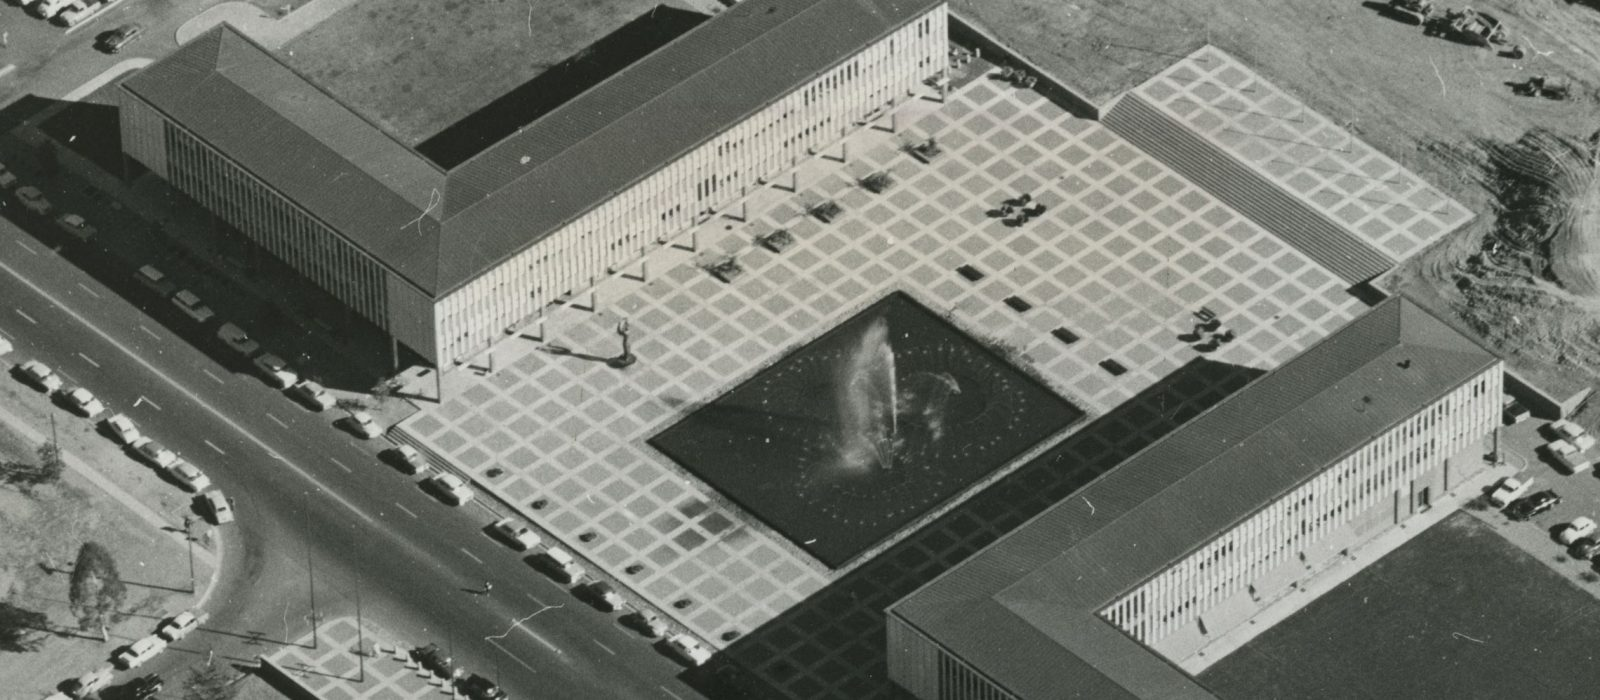 Civic Square Aerial c. 1961, Canberra Press Archive, CMAG Collection.